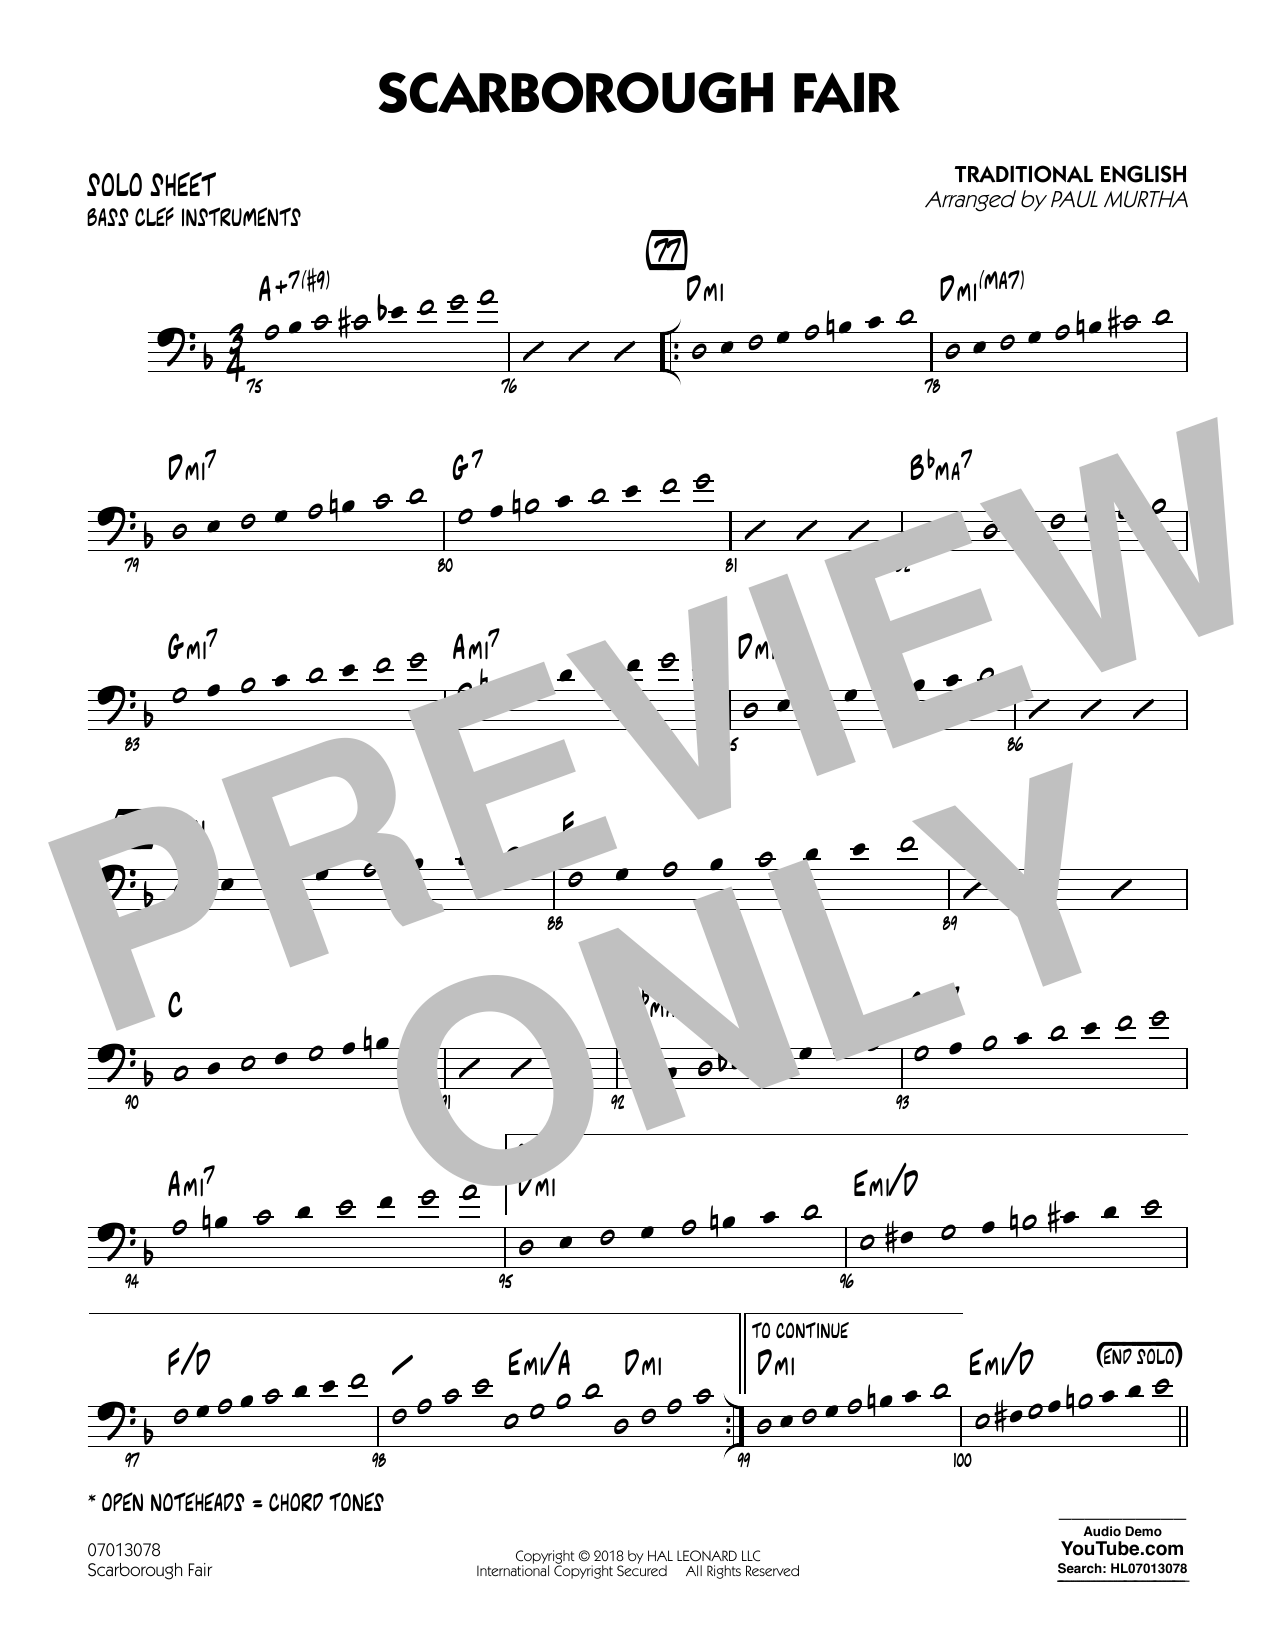 Paul Murtha Scarborough Fair - Bass Clef Solo Sheet sheet music notes and chords. Download Printable PDF.